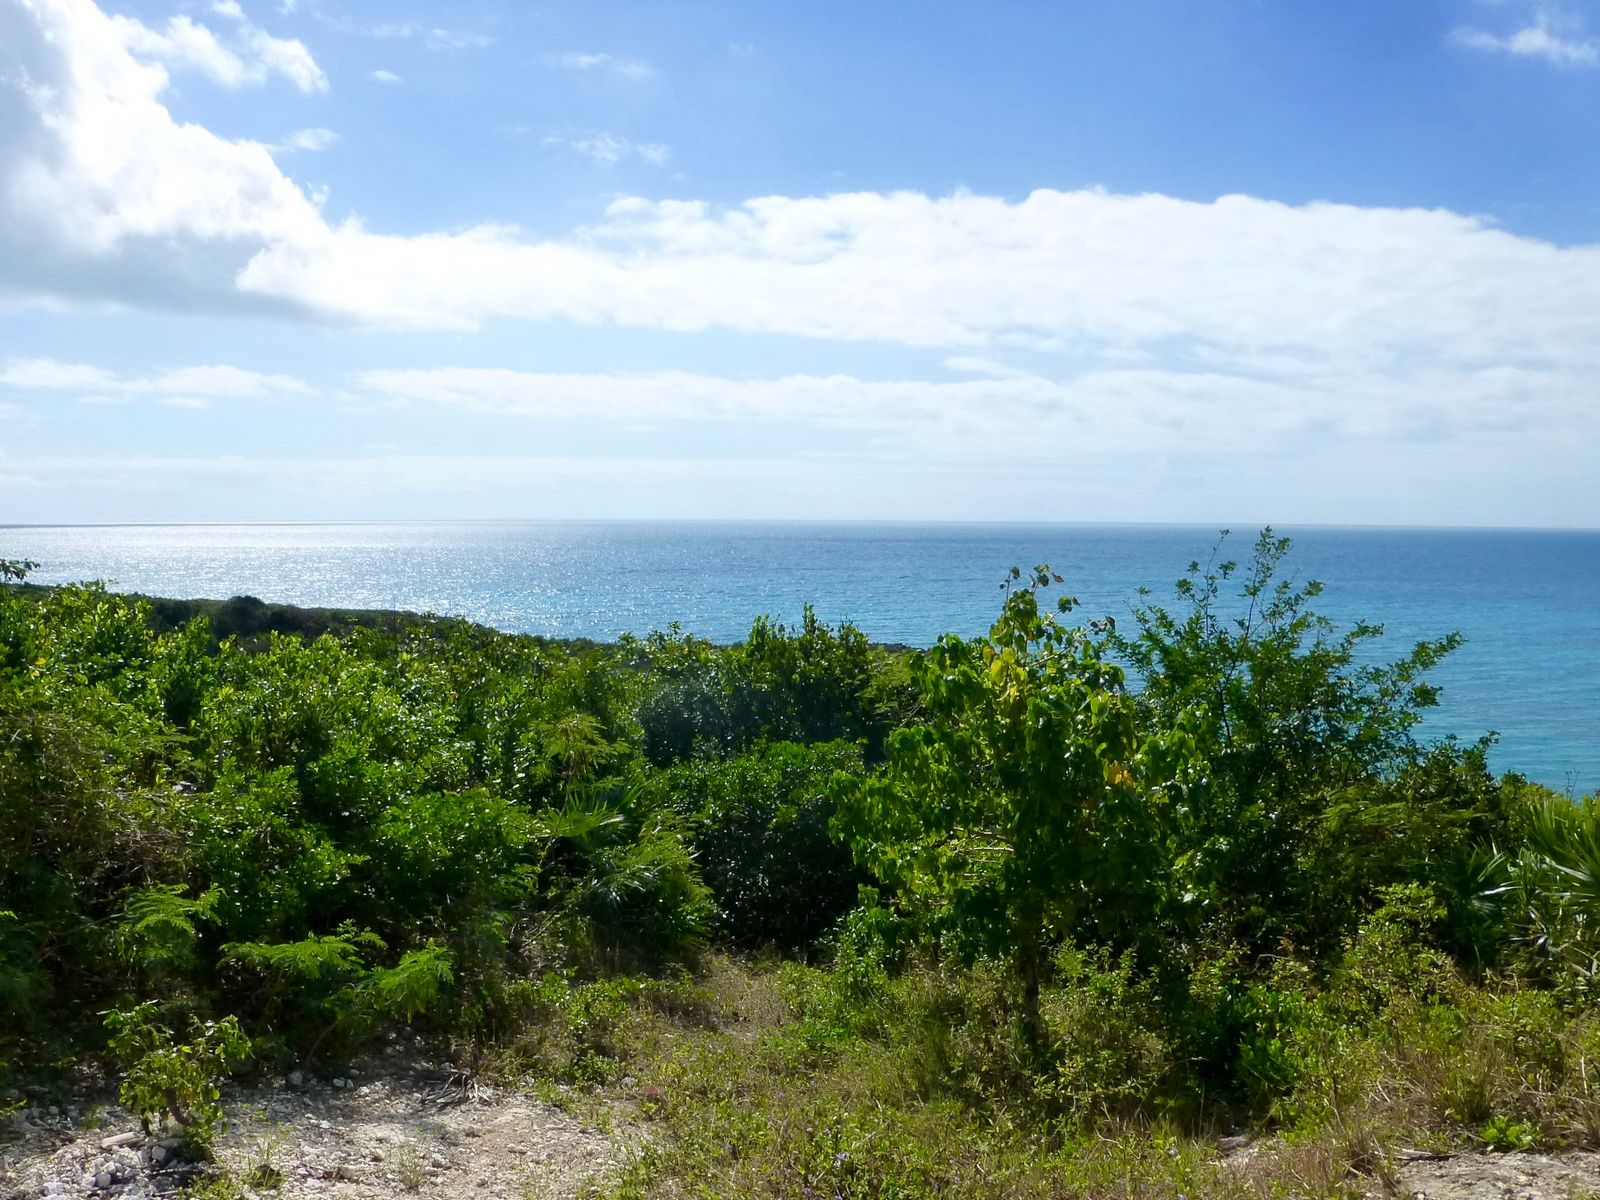 Land for Sale at Lot #4, Mutton Fish Gregory Town, Eleuthera Bahamas